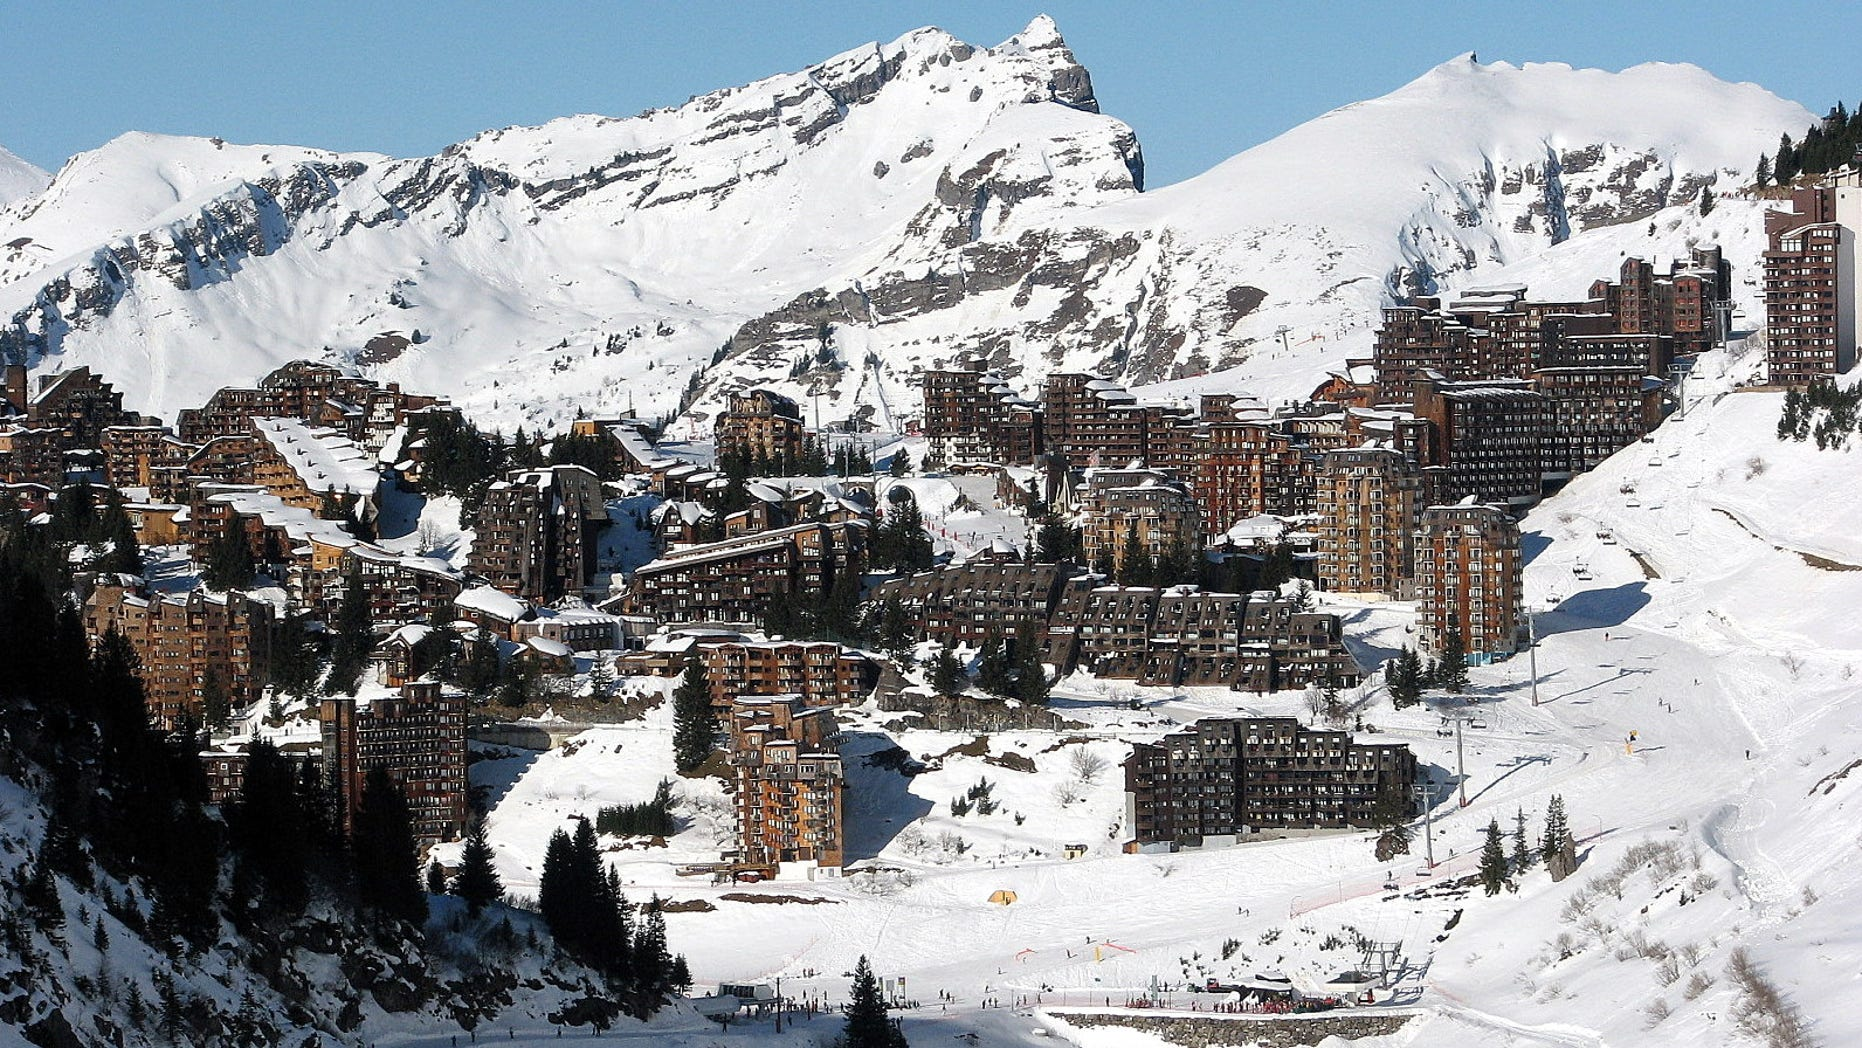 A teenager died in a skiing accident near the Avoriaz ski resort, seen above.